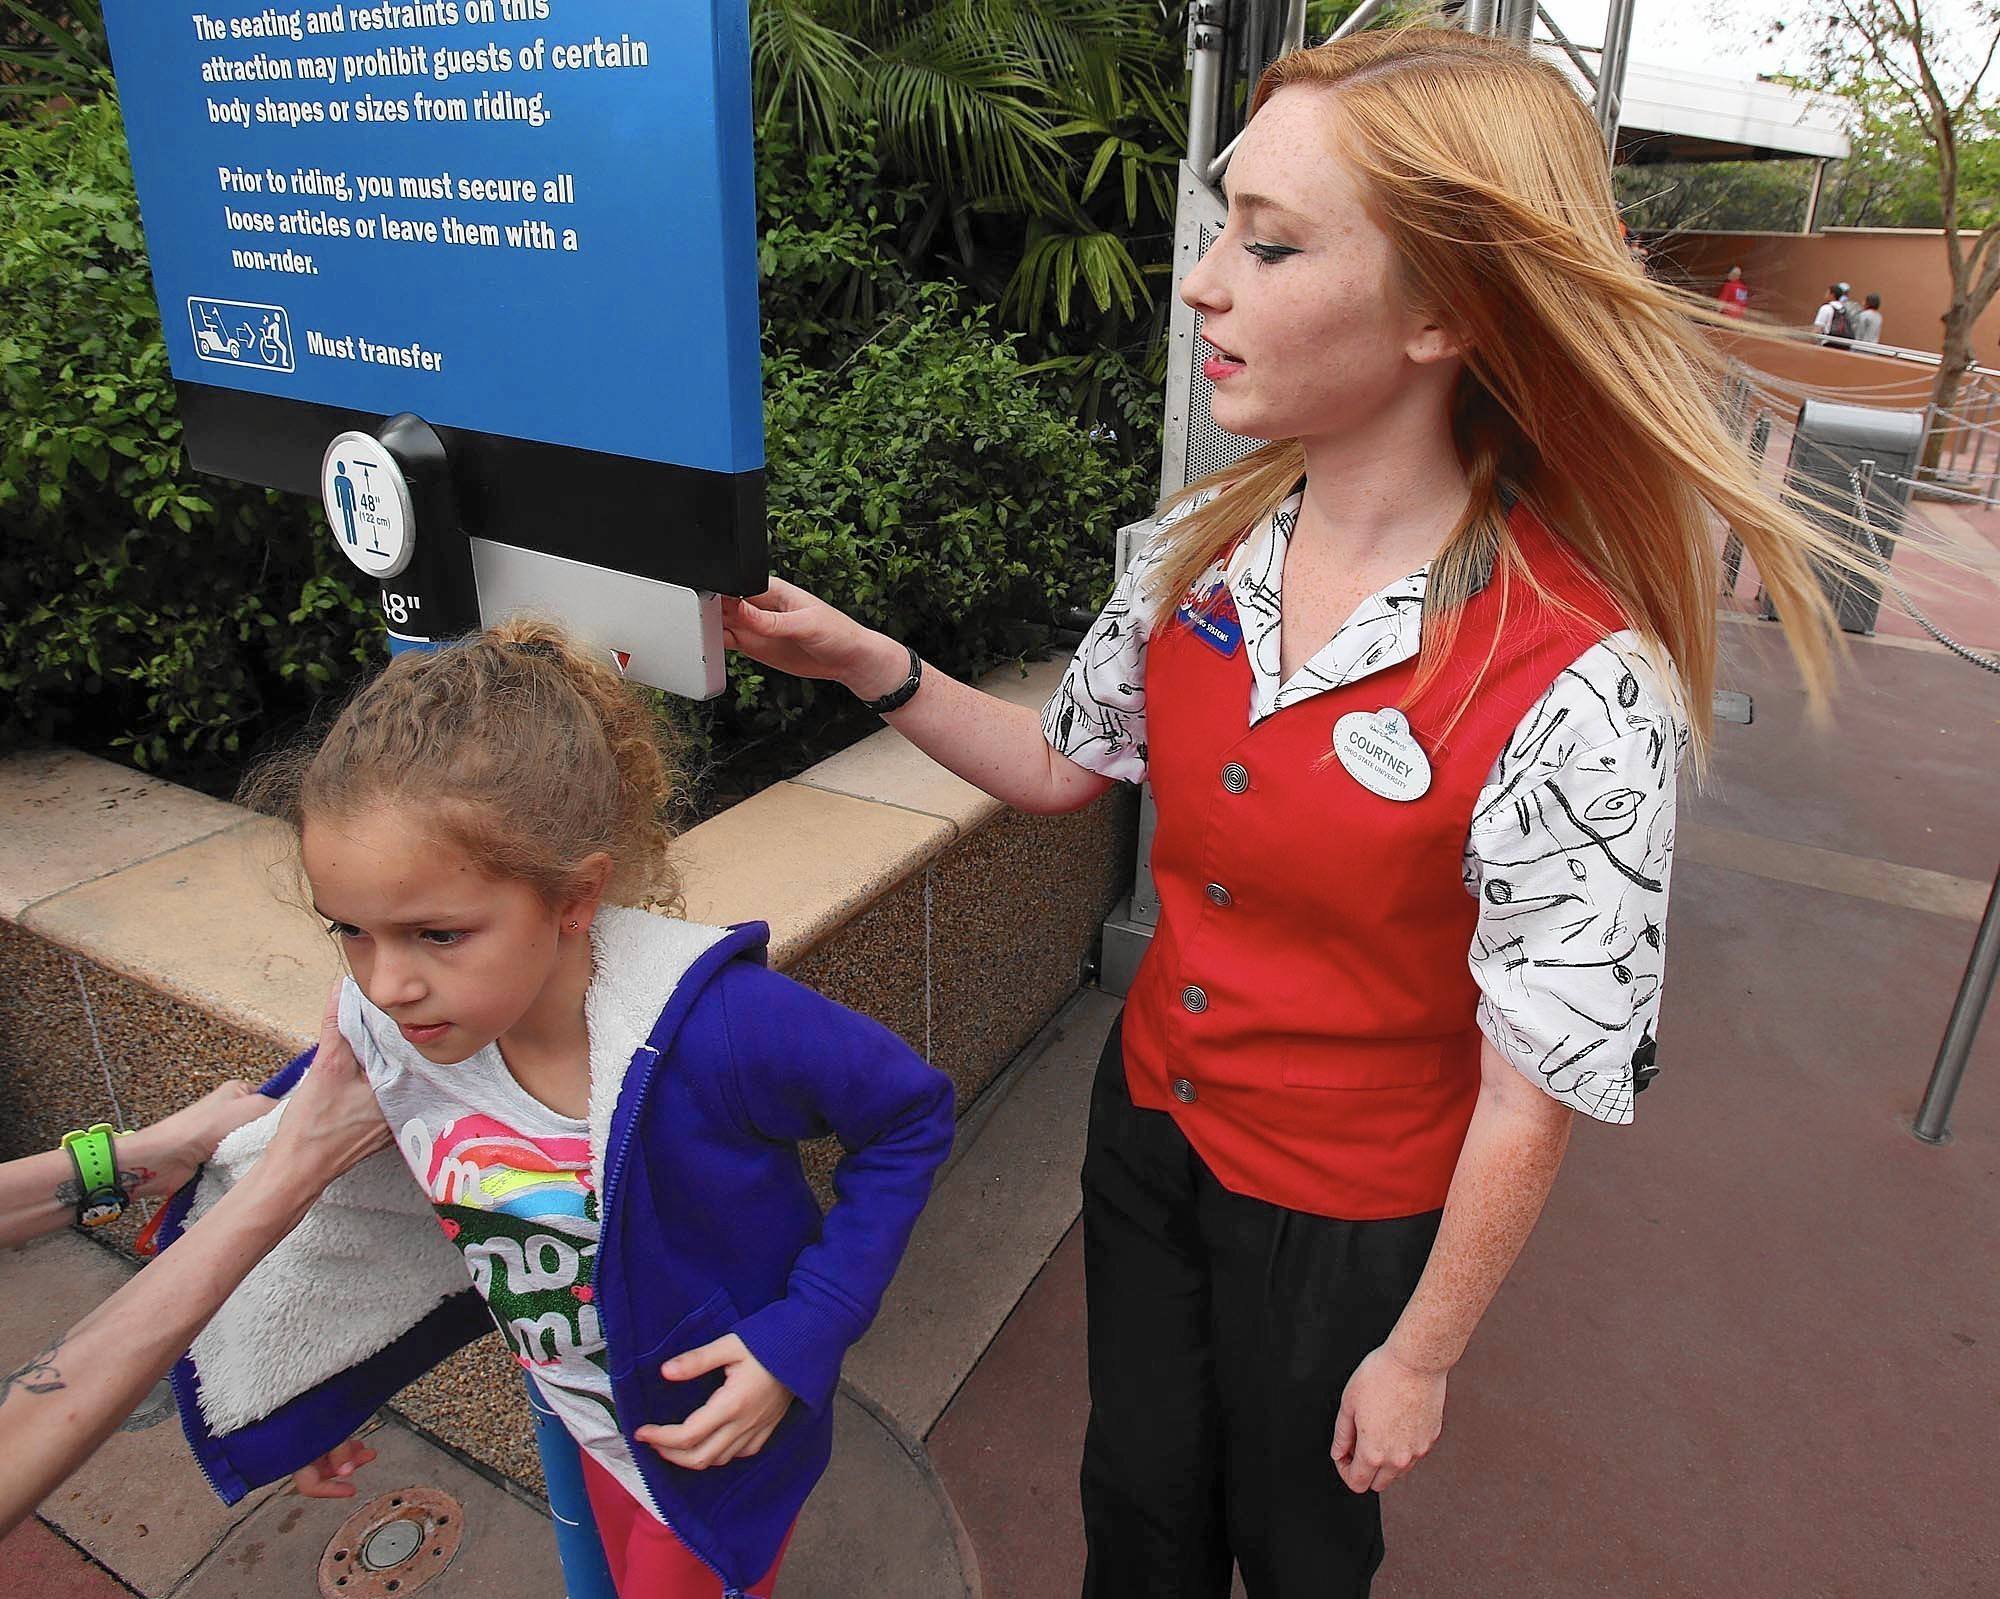 disney college program involves thousands of paid internships disney college program involves thousands of paid internships orlando sentinel